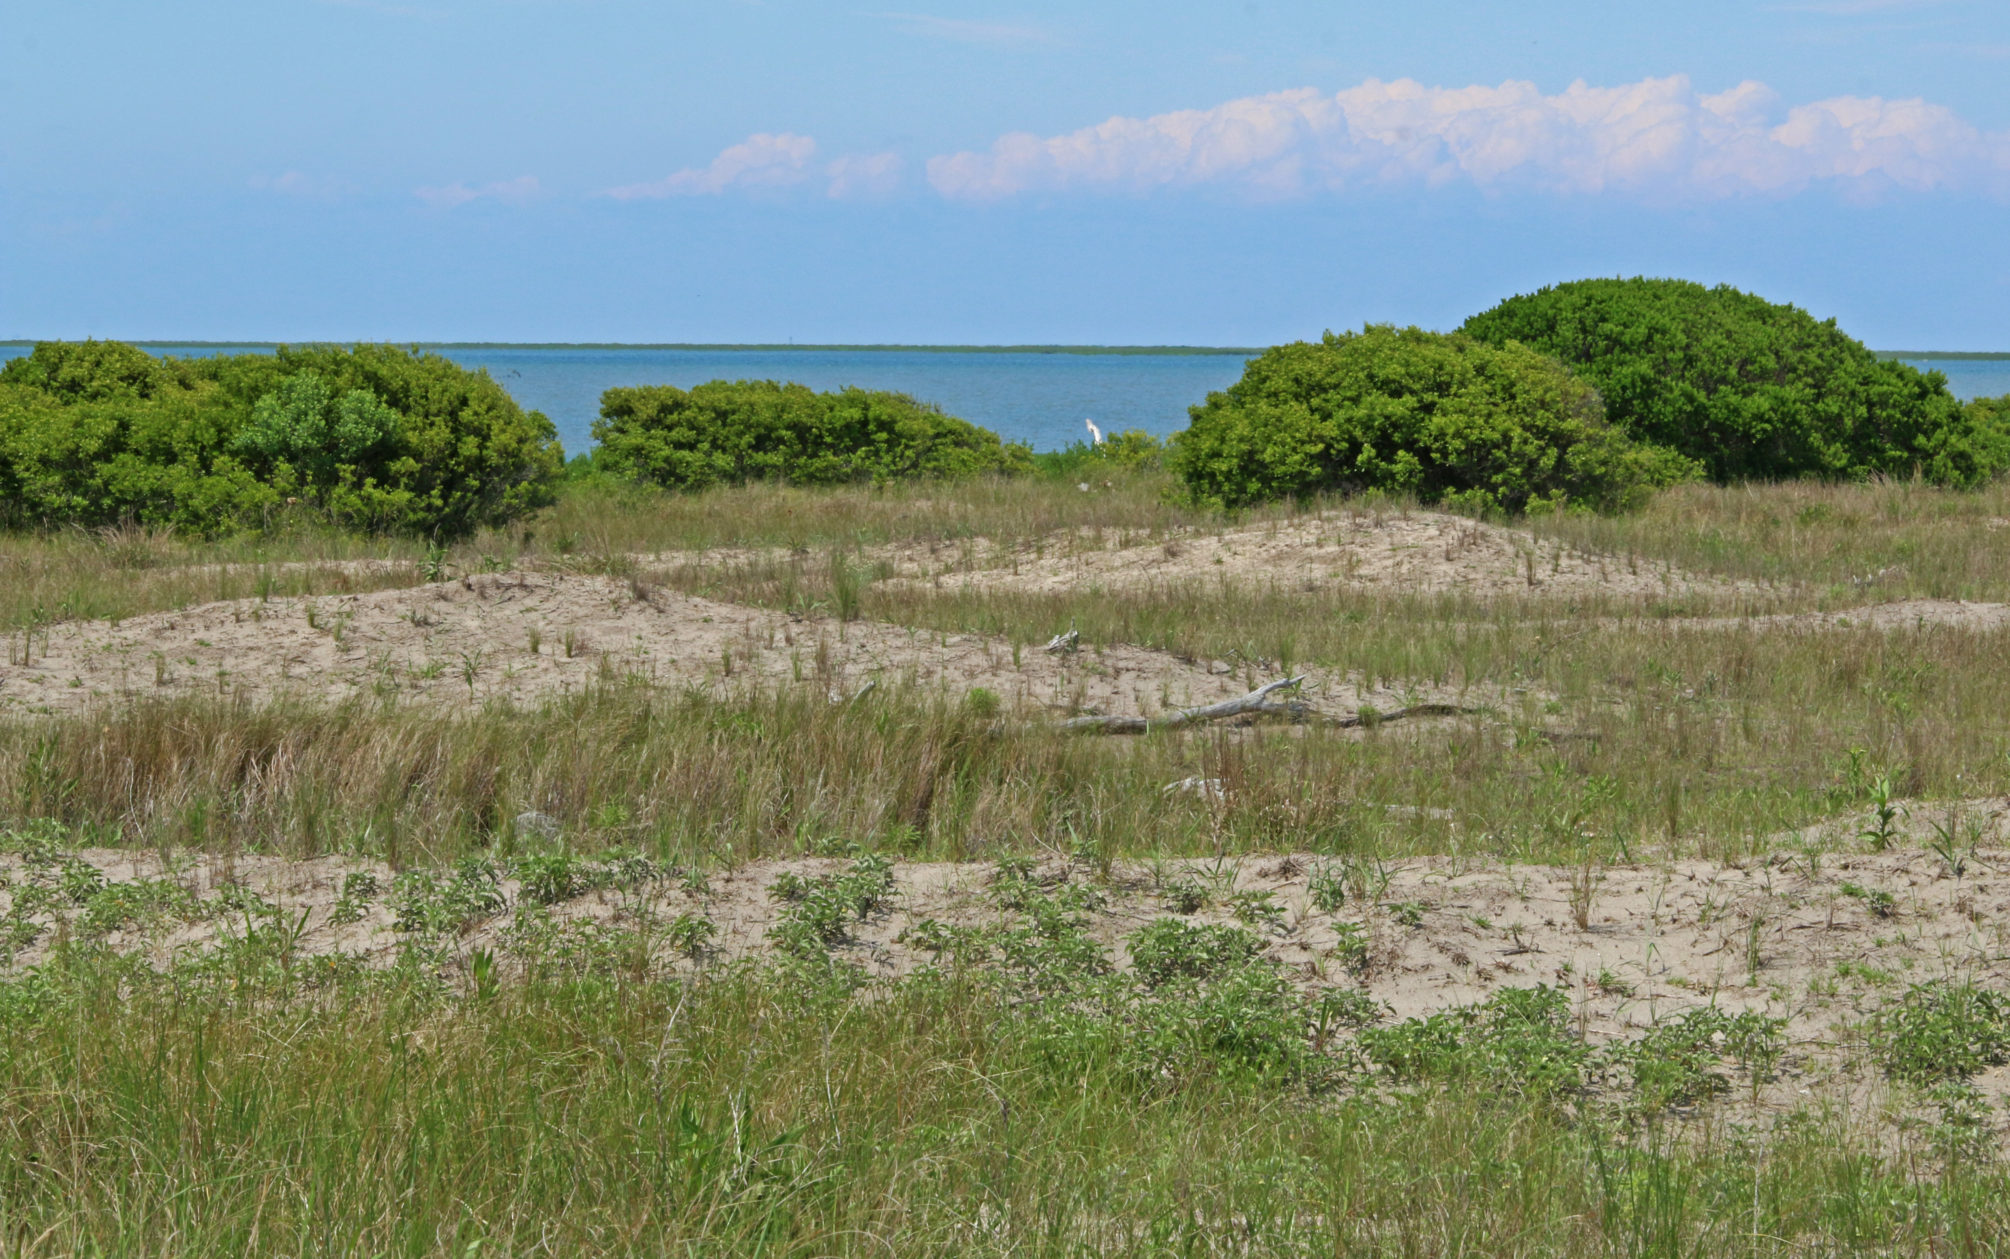 Sand dunes giving way to taller shrubs that have rapidly expanded on these barrier islands thanks to a warming climate.